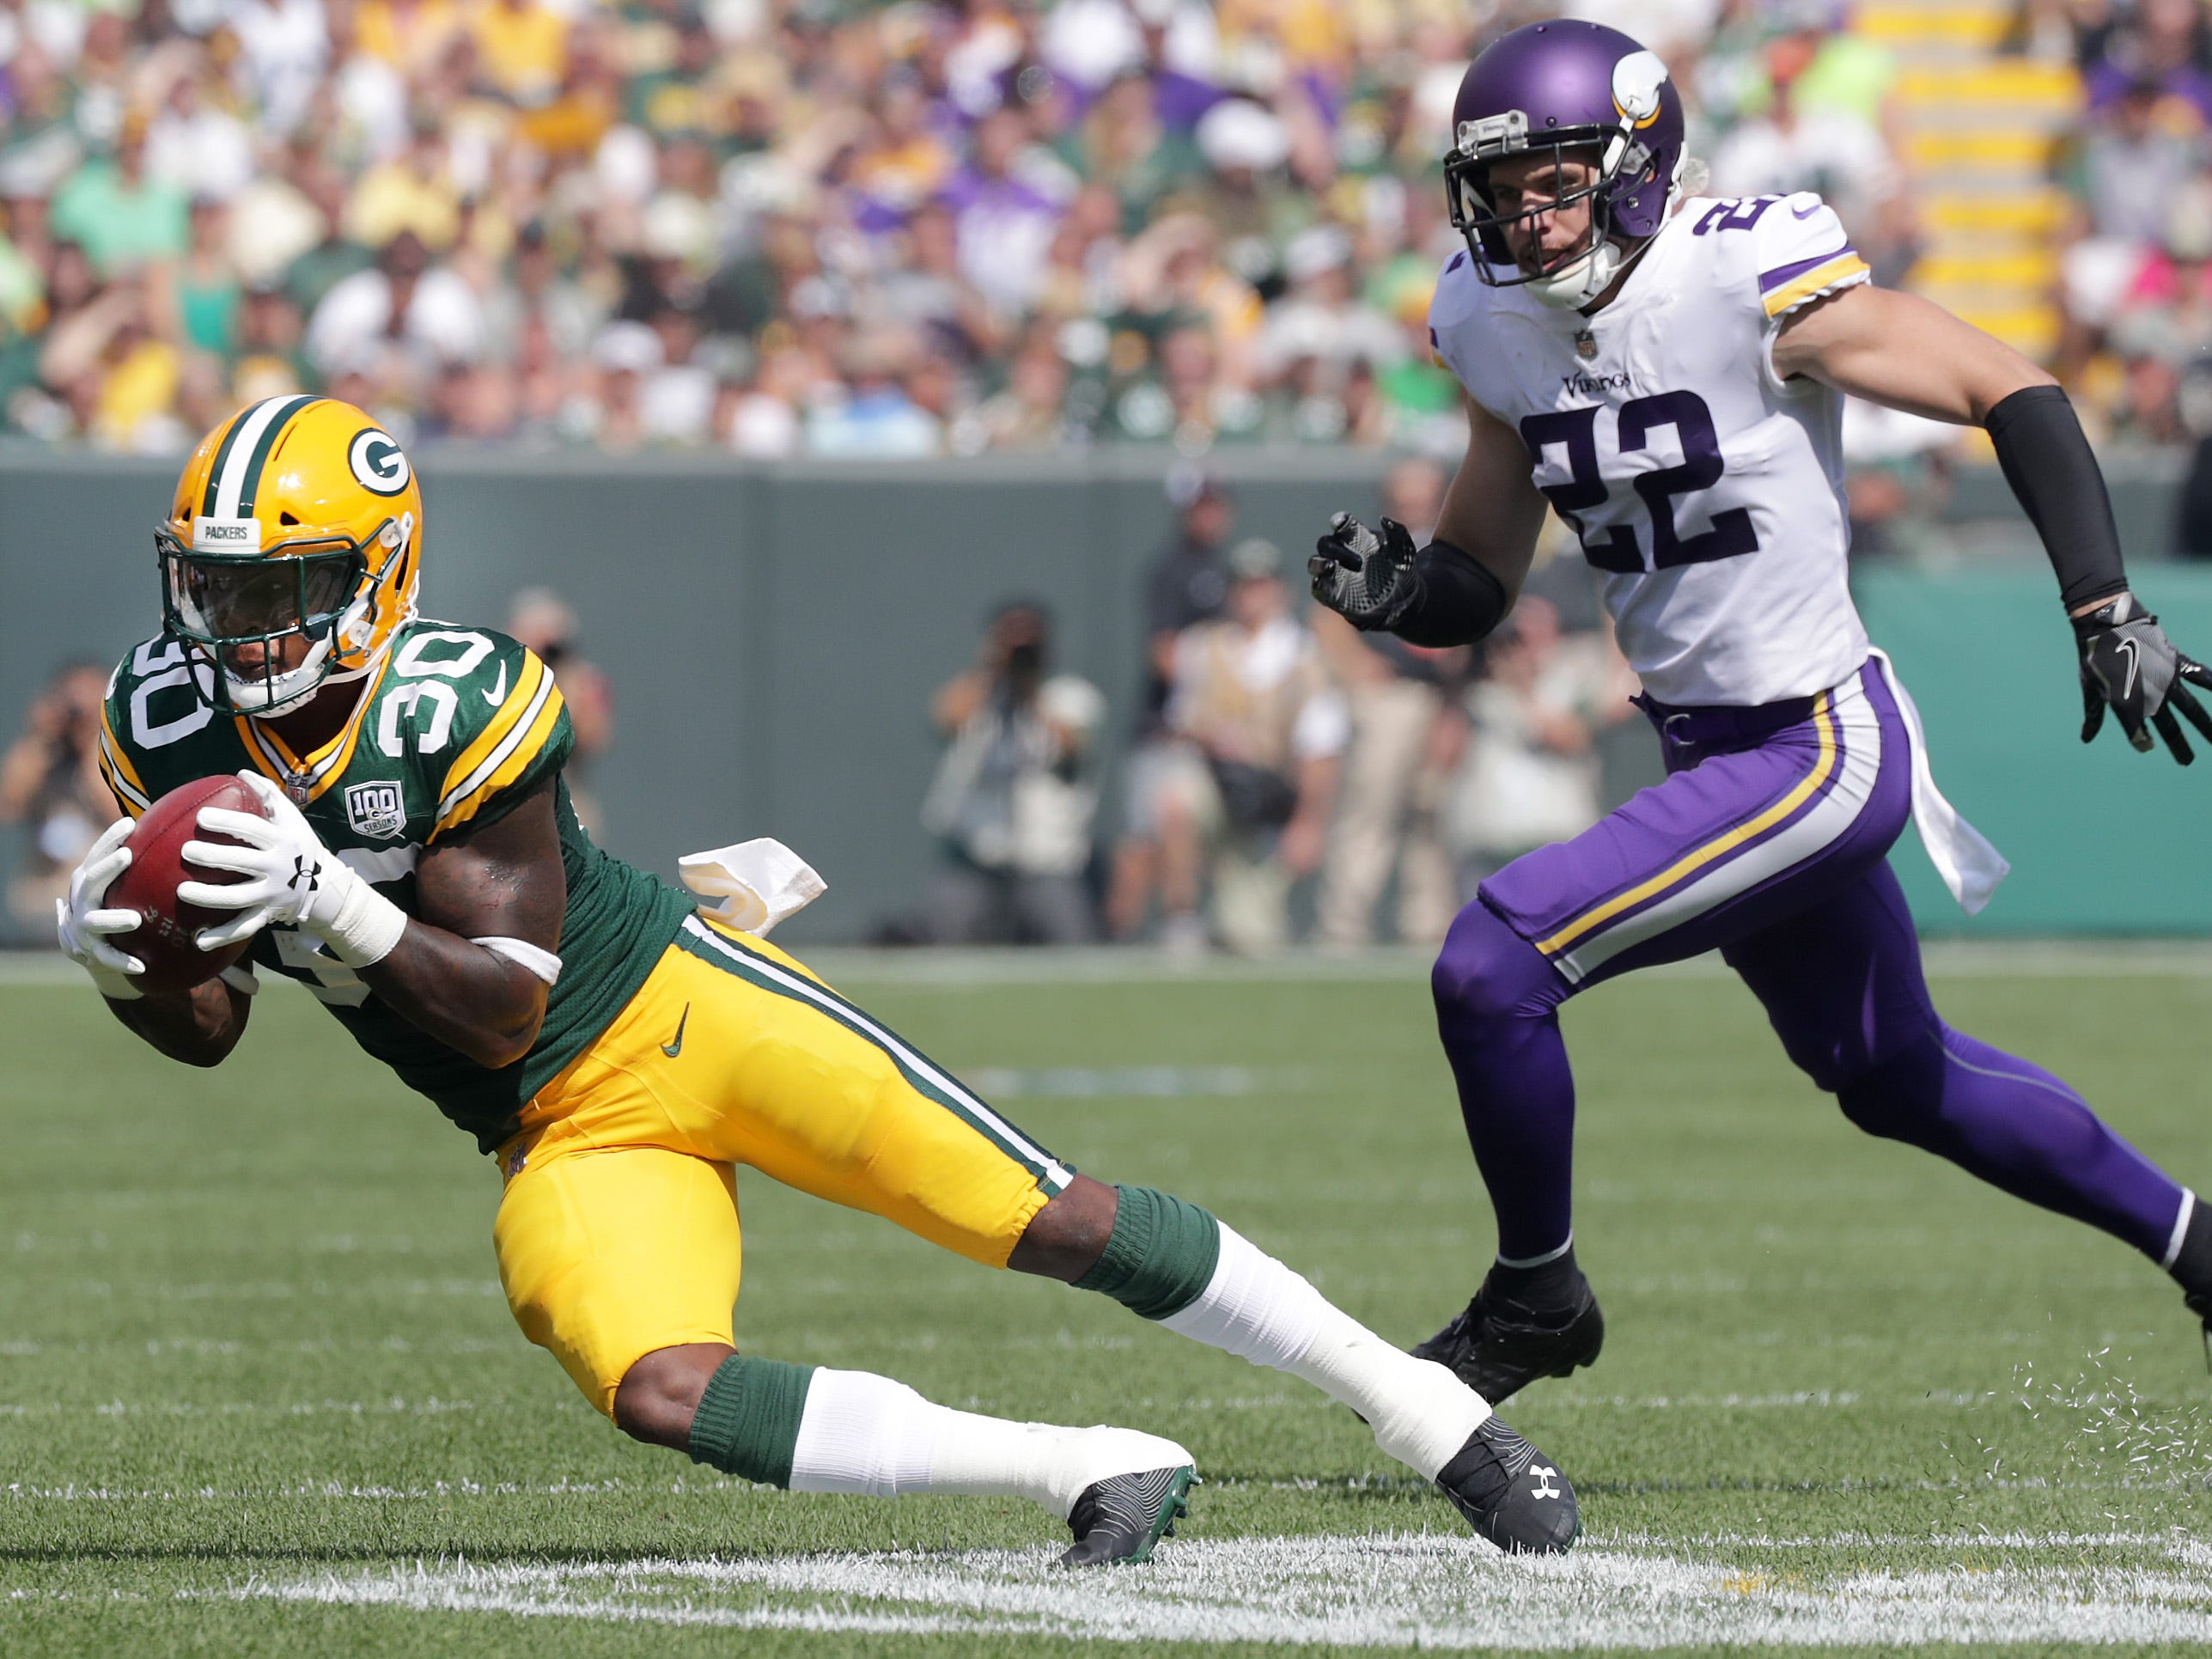 Green Bay Packers' Jamaal Williams catches a pass in the flats in front of the defense of Minnesota Vikings' Harrison Smith during their football game on Sunday, September 16, 2018, at Lambeau Field in Green Bay, Wis.